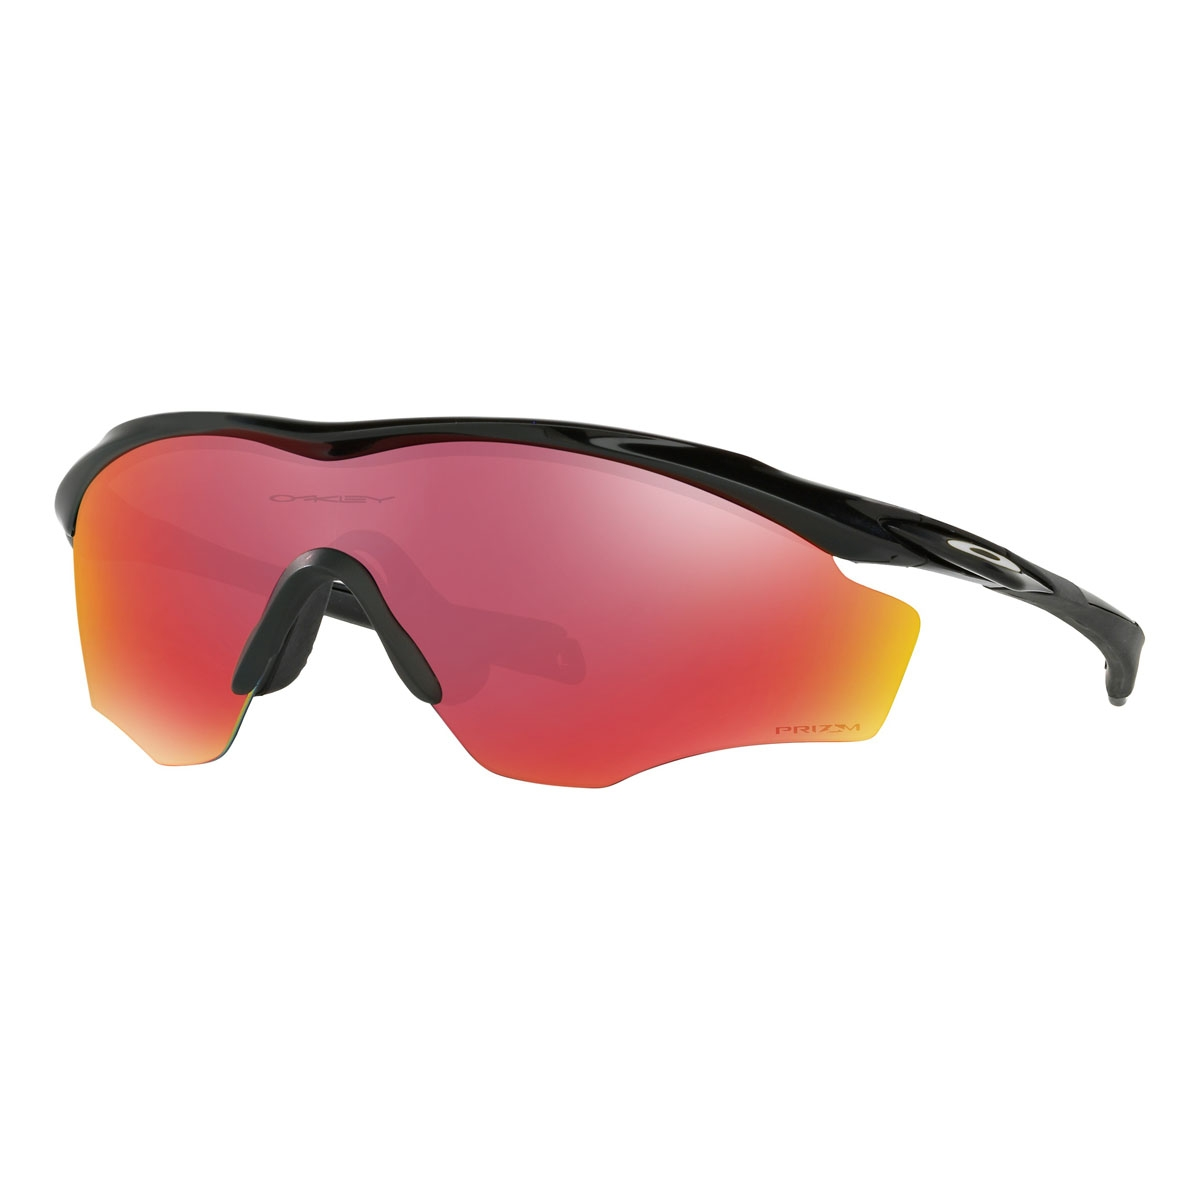 b270baa791 ... clearance image of oakley m2 frame xl prizm cricket sunglasses polished  black frame prizm cricket d1d2b